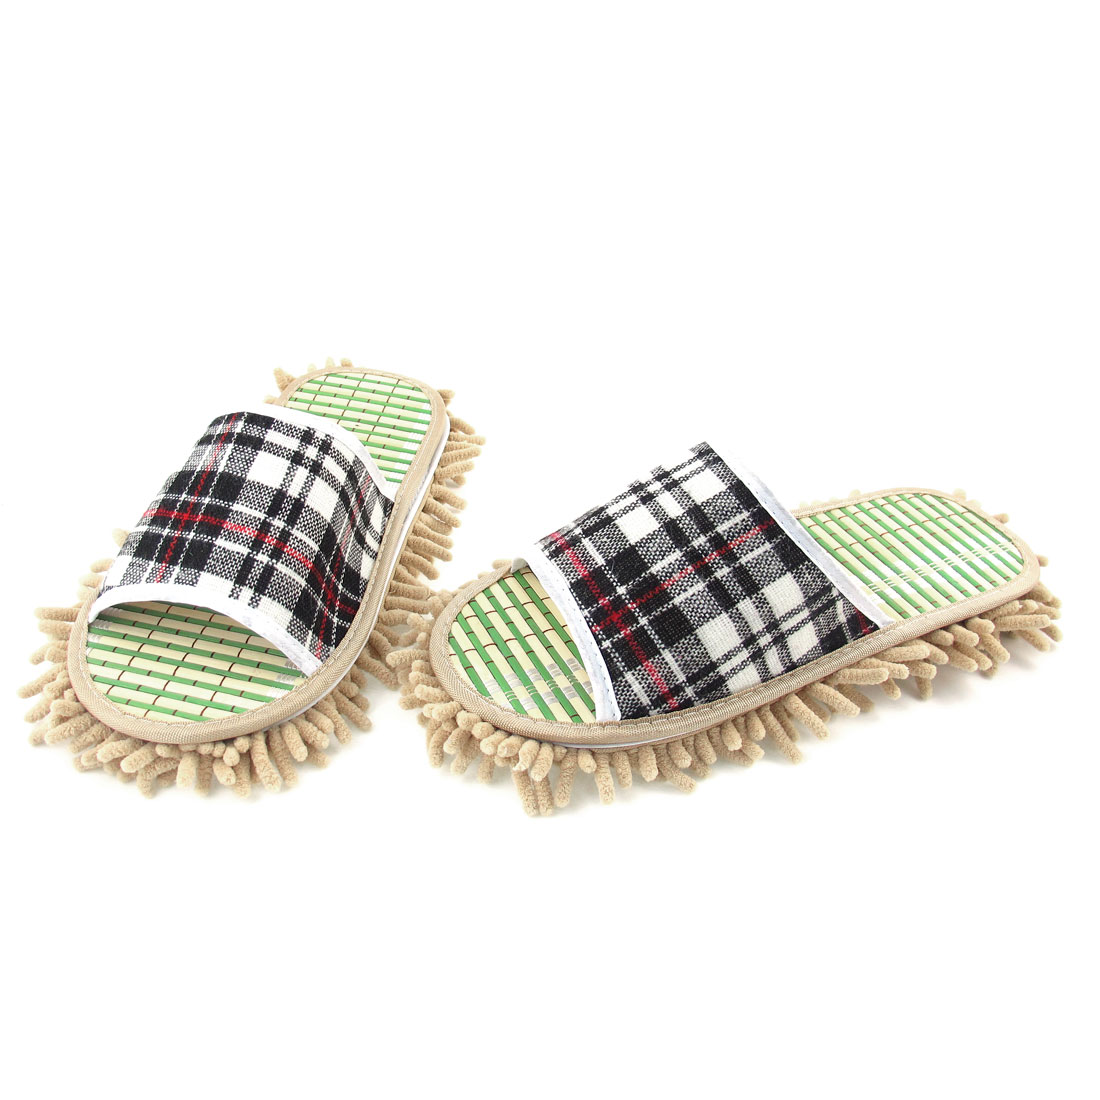 Plaid Decor Khaki Outsole Open Toe Style Mop Slippers Shoes EU 43 for Man